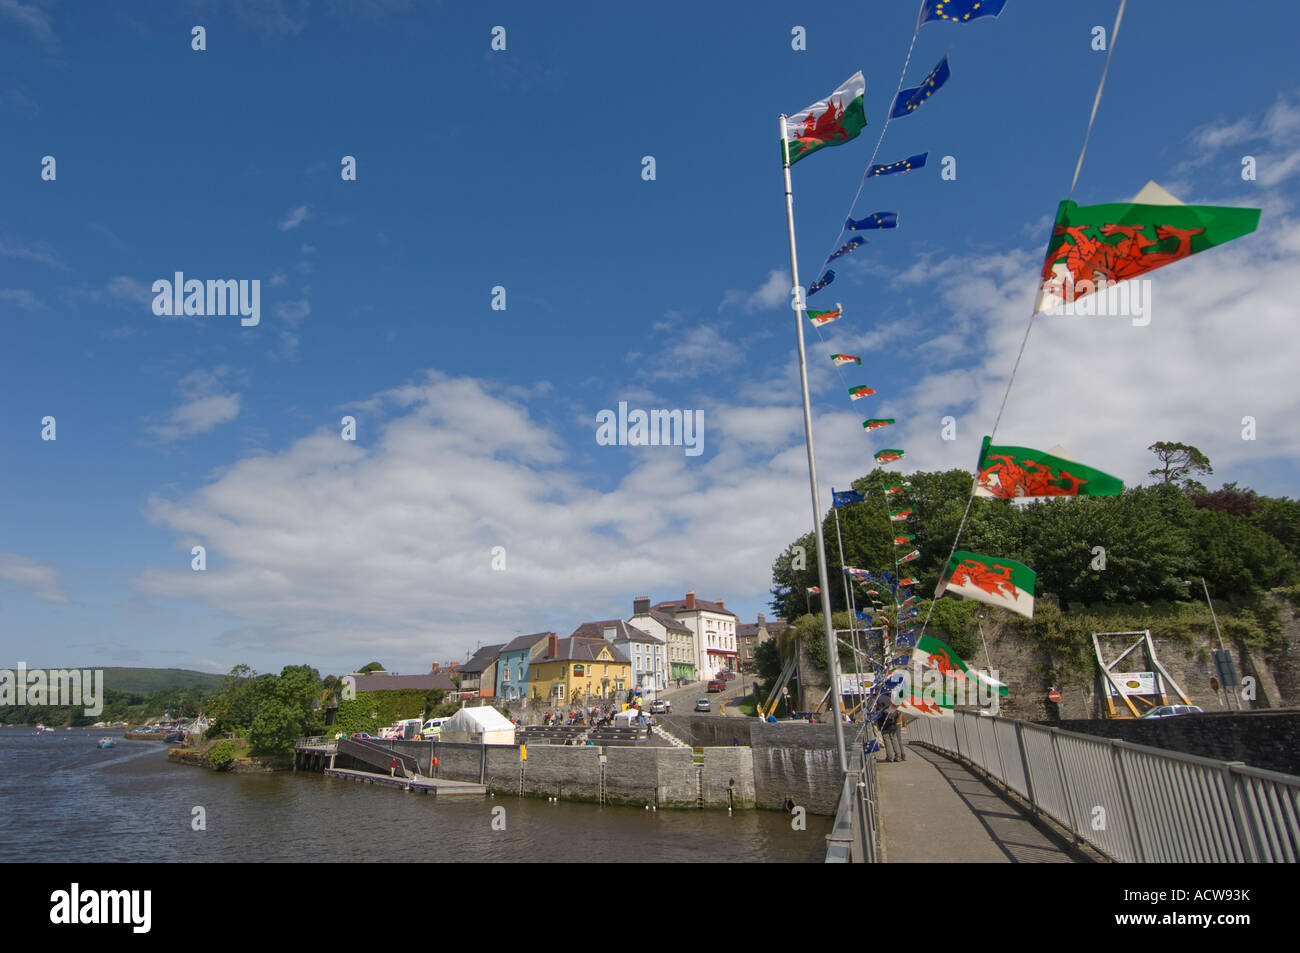 Cardigan Aberteifi Ceredigion west wales July 5 2007 - Prince of Wales  quay on the river Teifi Stock Photo